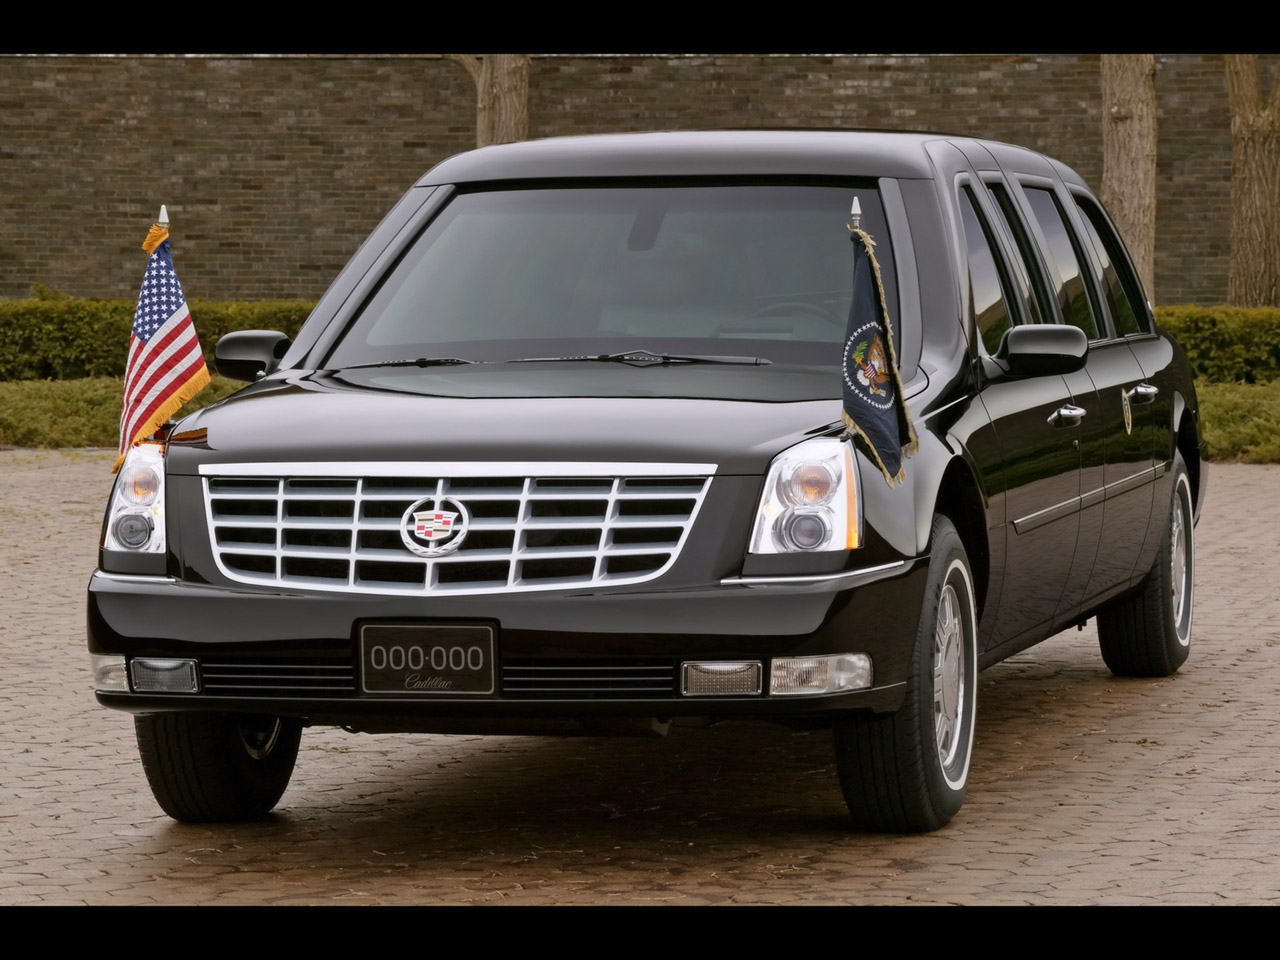 Magnificent Presidents Cadillac Images - Electrical System Block ...